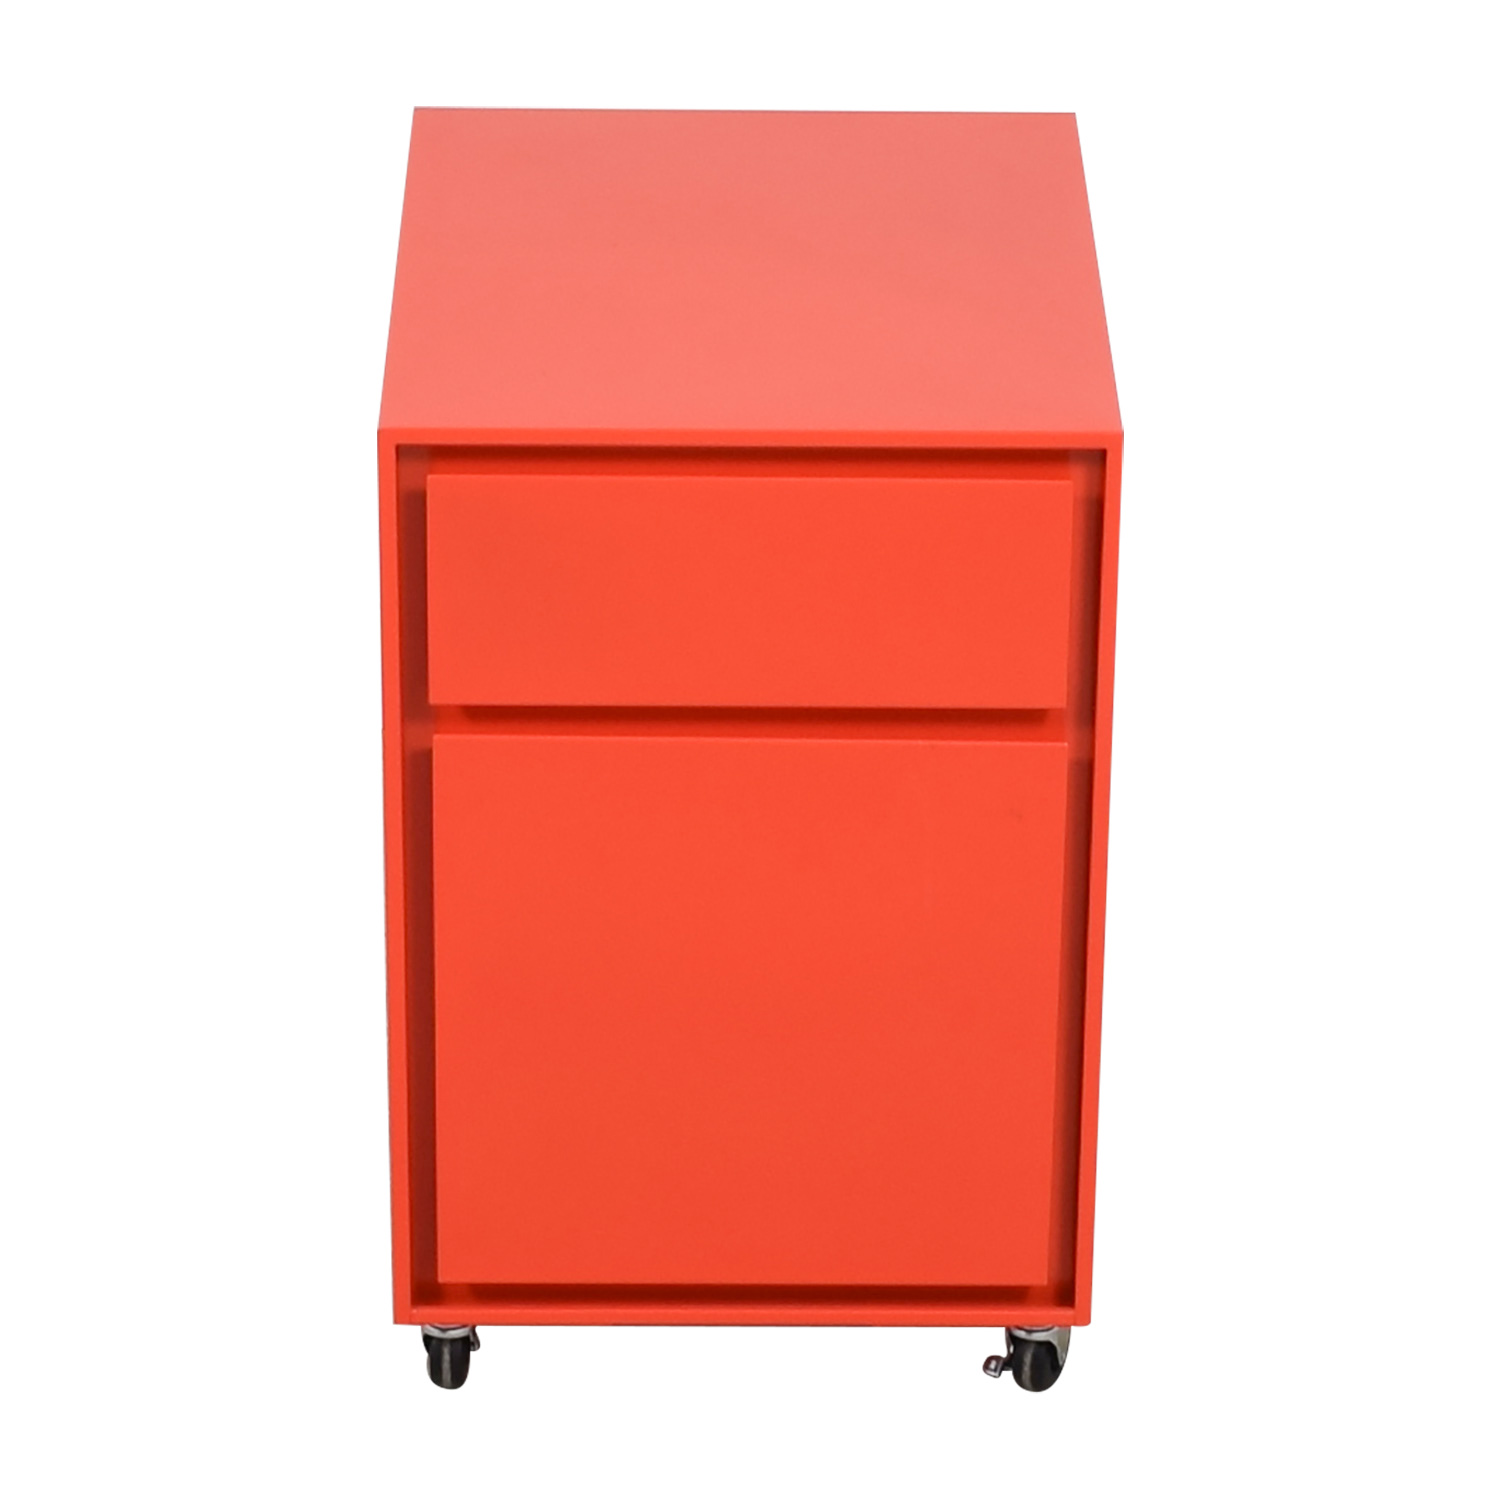 Crate & Barrel Paprika Pilsen File Cabinet Crate & Barrel